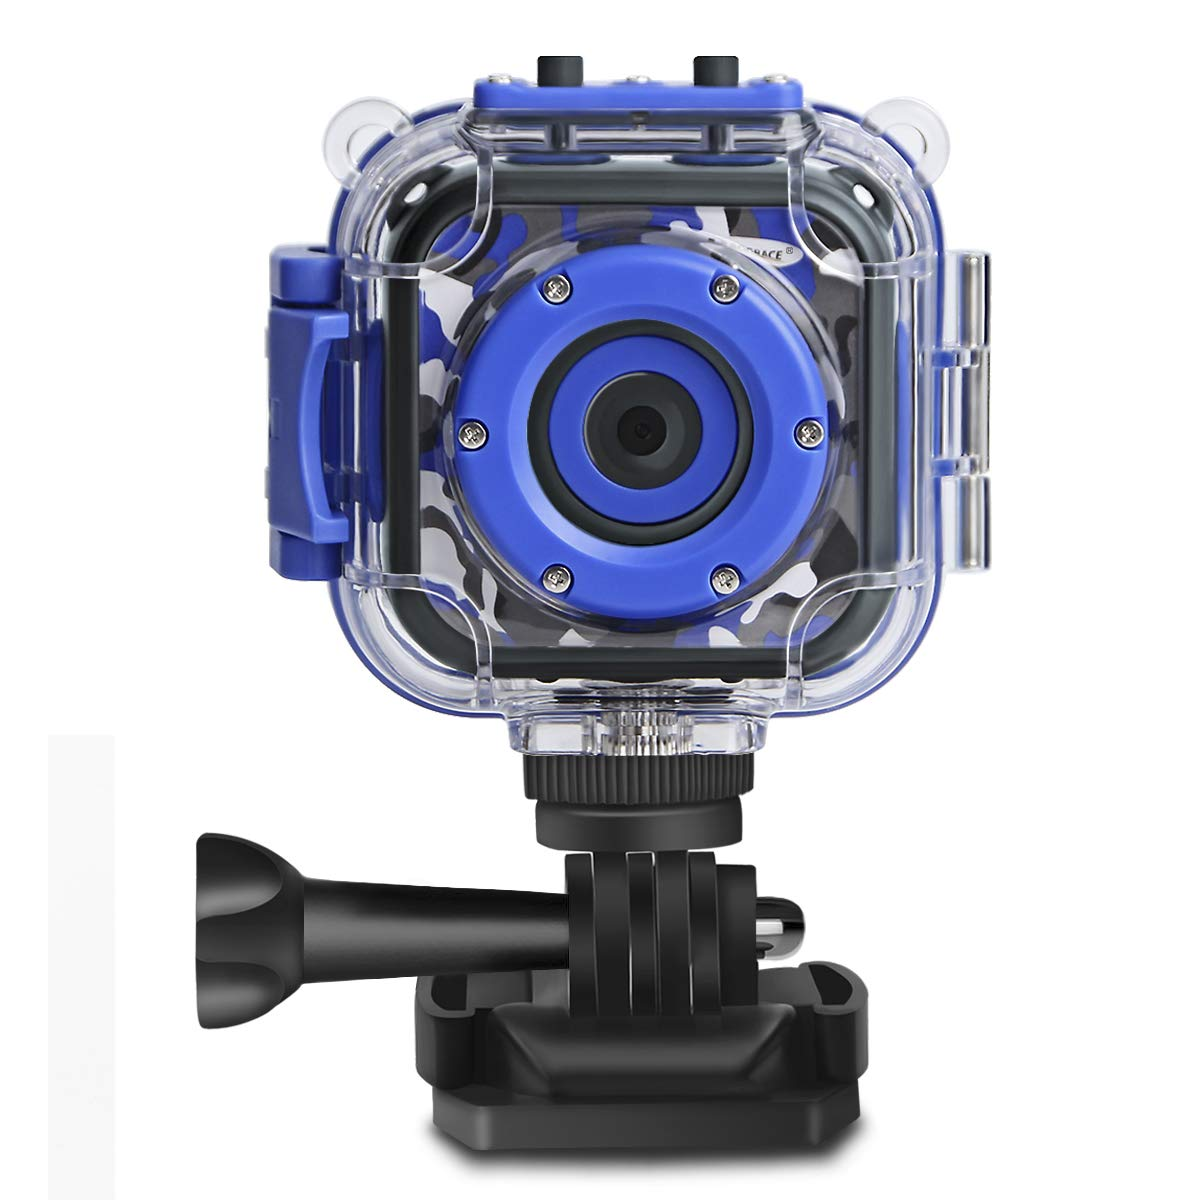 DROGRACE Kids Camera Waterproof HD Action Cam Digital Camera 1080P Underwater Sports Camera Camcorder DV for Girls Boys Birthday Holiday Gift Learn Camera Toy with 1.77 Inch LCD Screen (Blue)